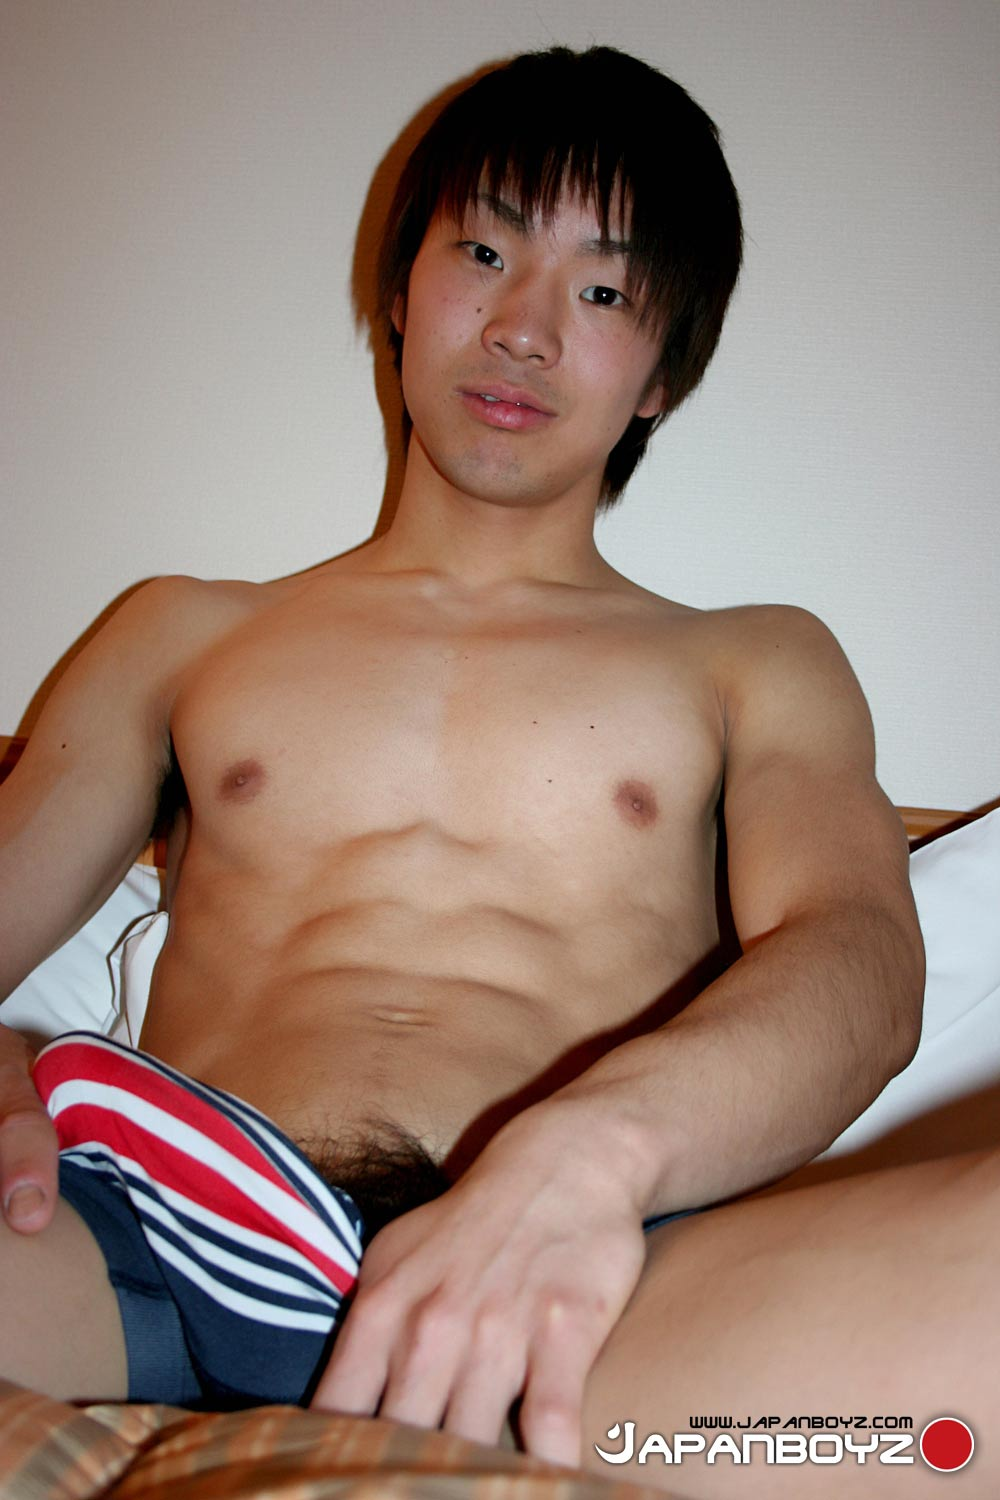 JapanBoyz-Satoshi-Bisexual-Jock-Jerking-Big-Thick-Uncut-Asian-Cock-04 Japanese Bisexual Twink Jock Jerks His Thick Uncut Hairy Asian Cock